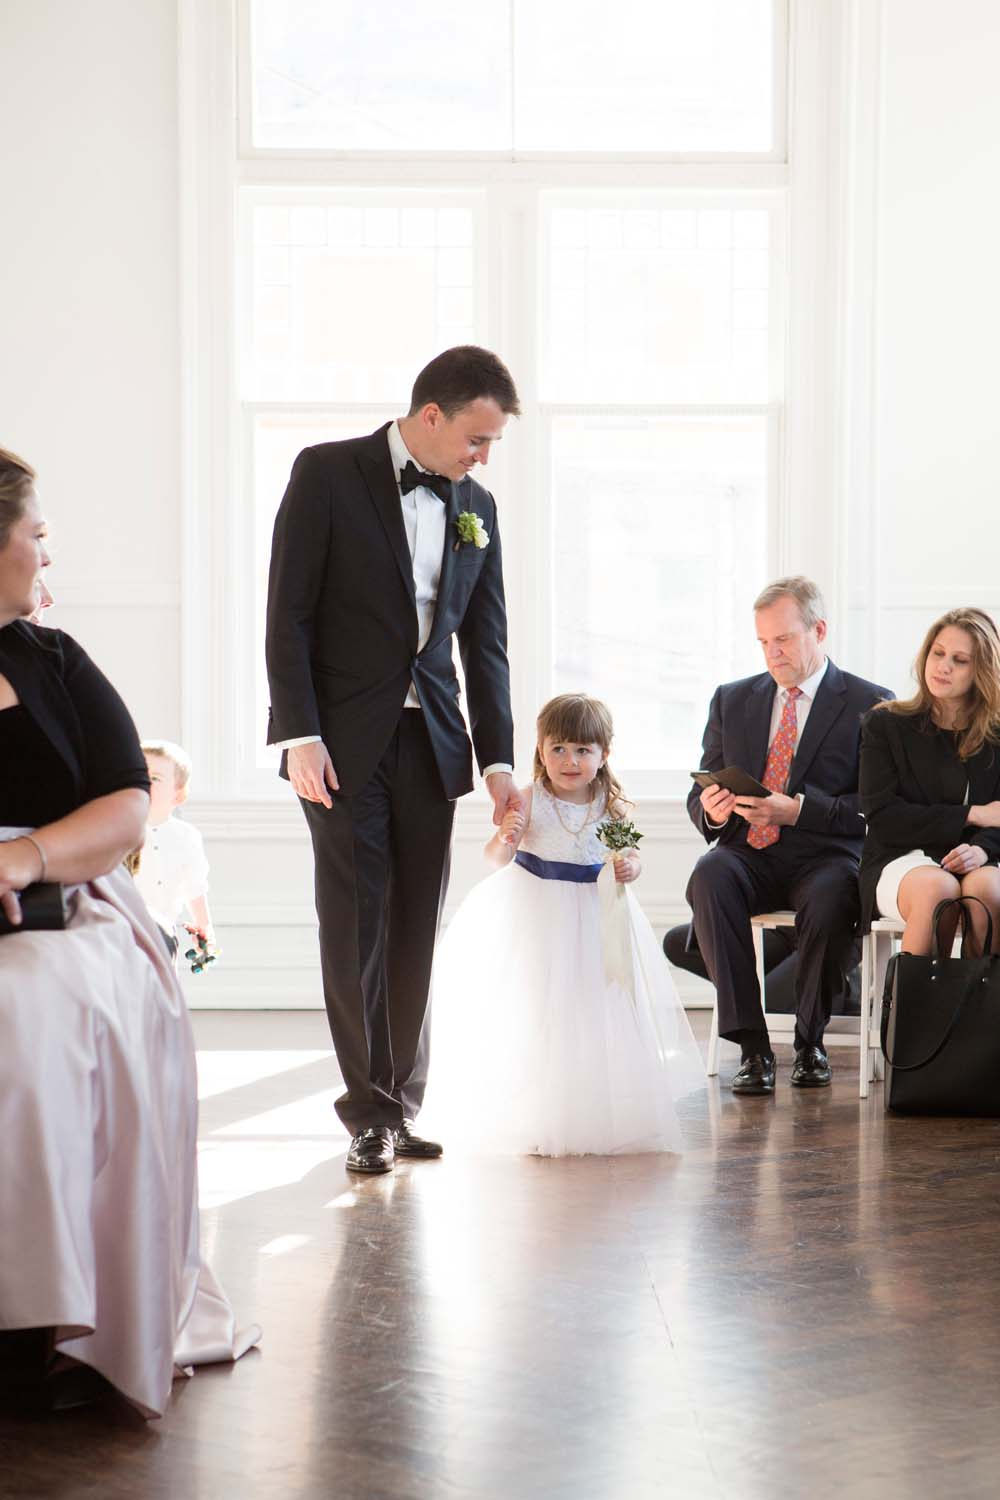 A Modern Wedding At The Great Hall In Toronto - flower girl